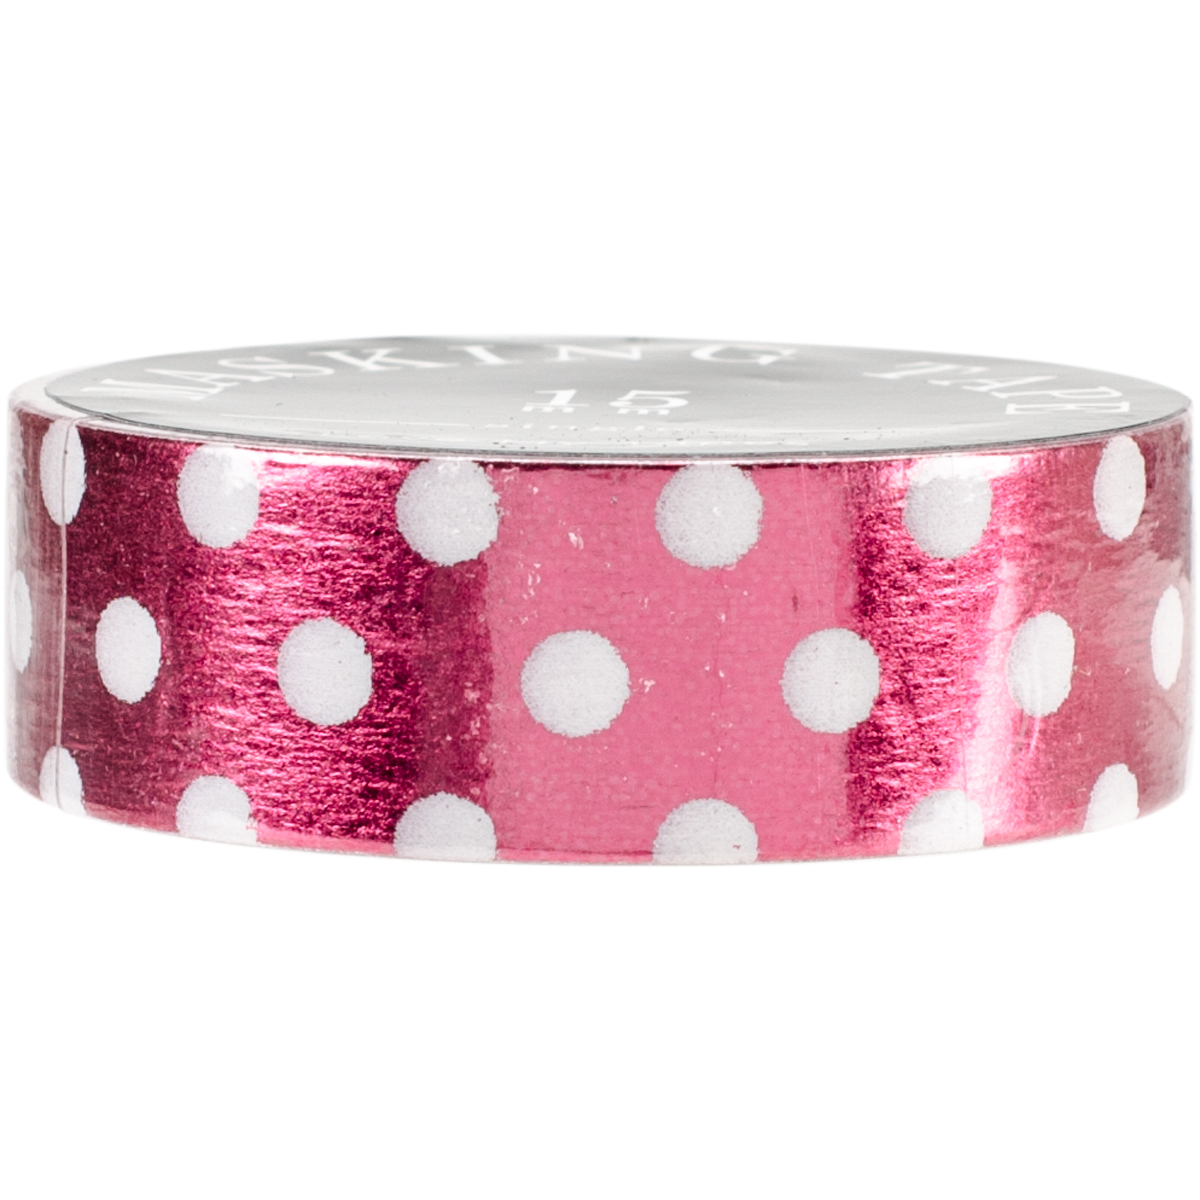 Love My Tapes Foil Washi Tape 15mmx10m-Red White Dots